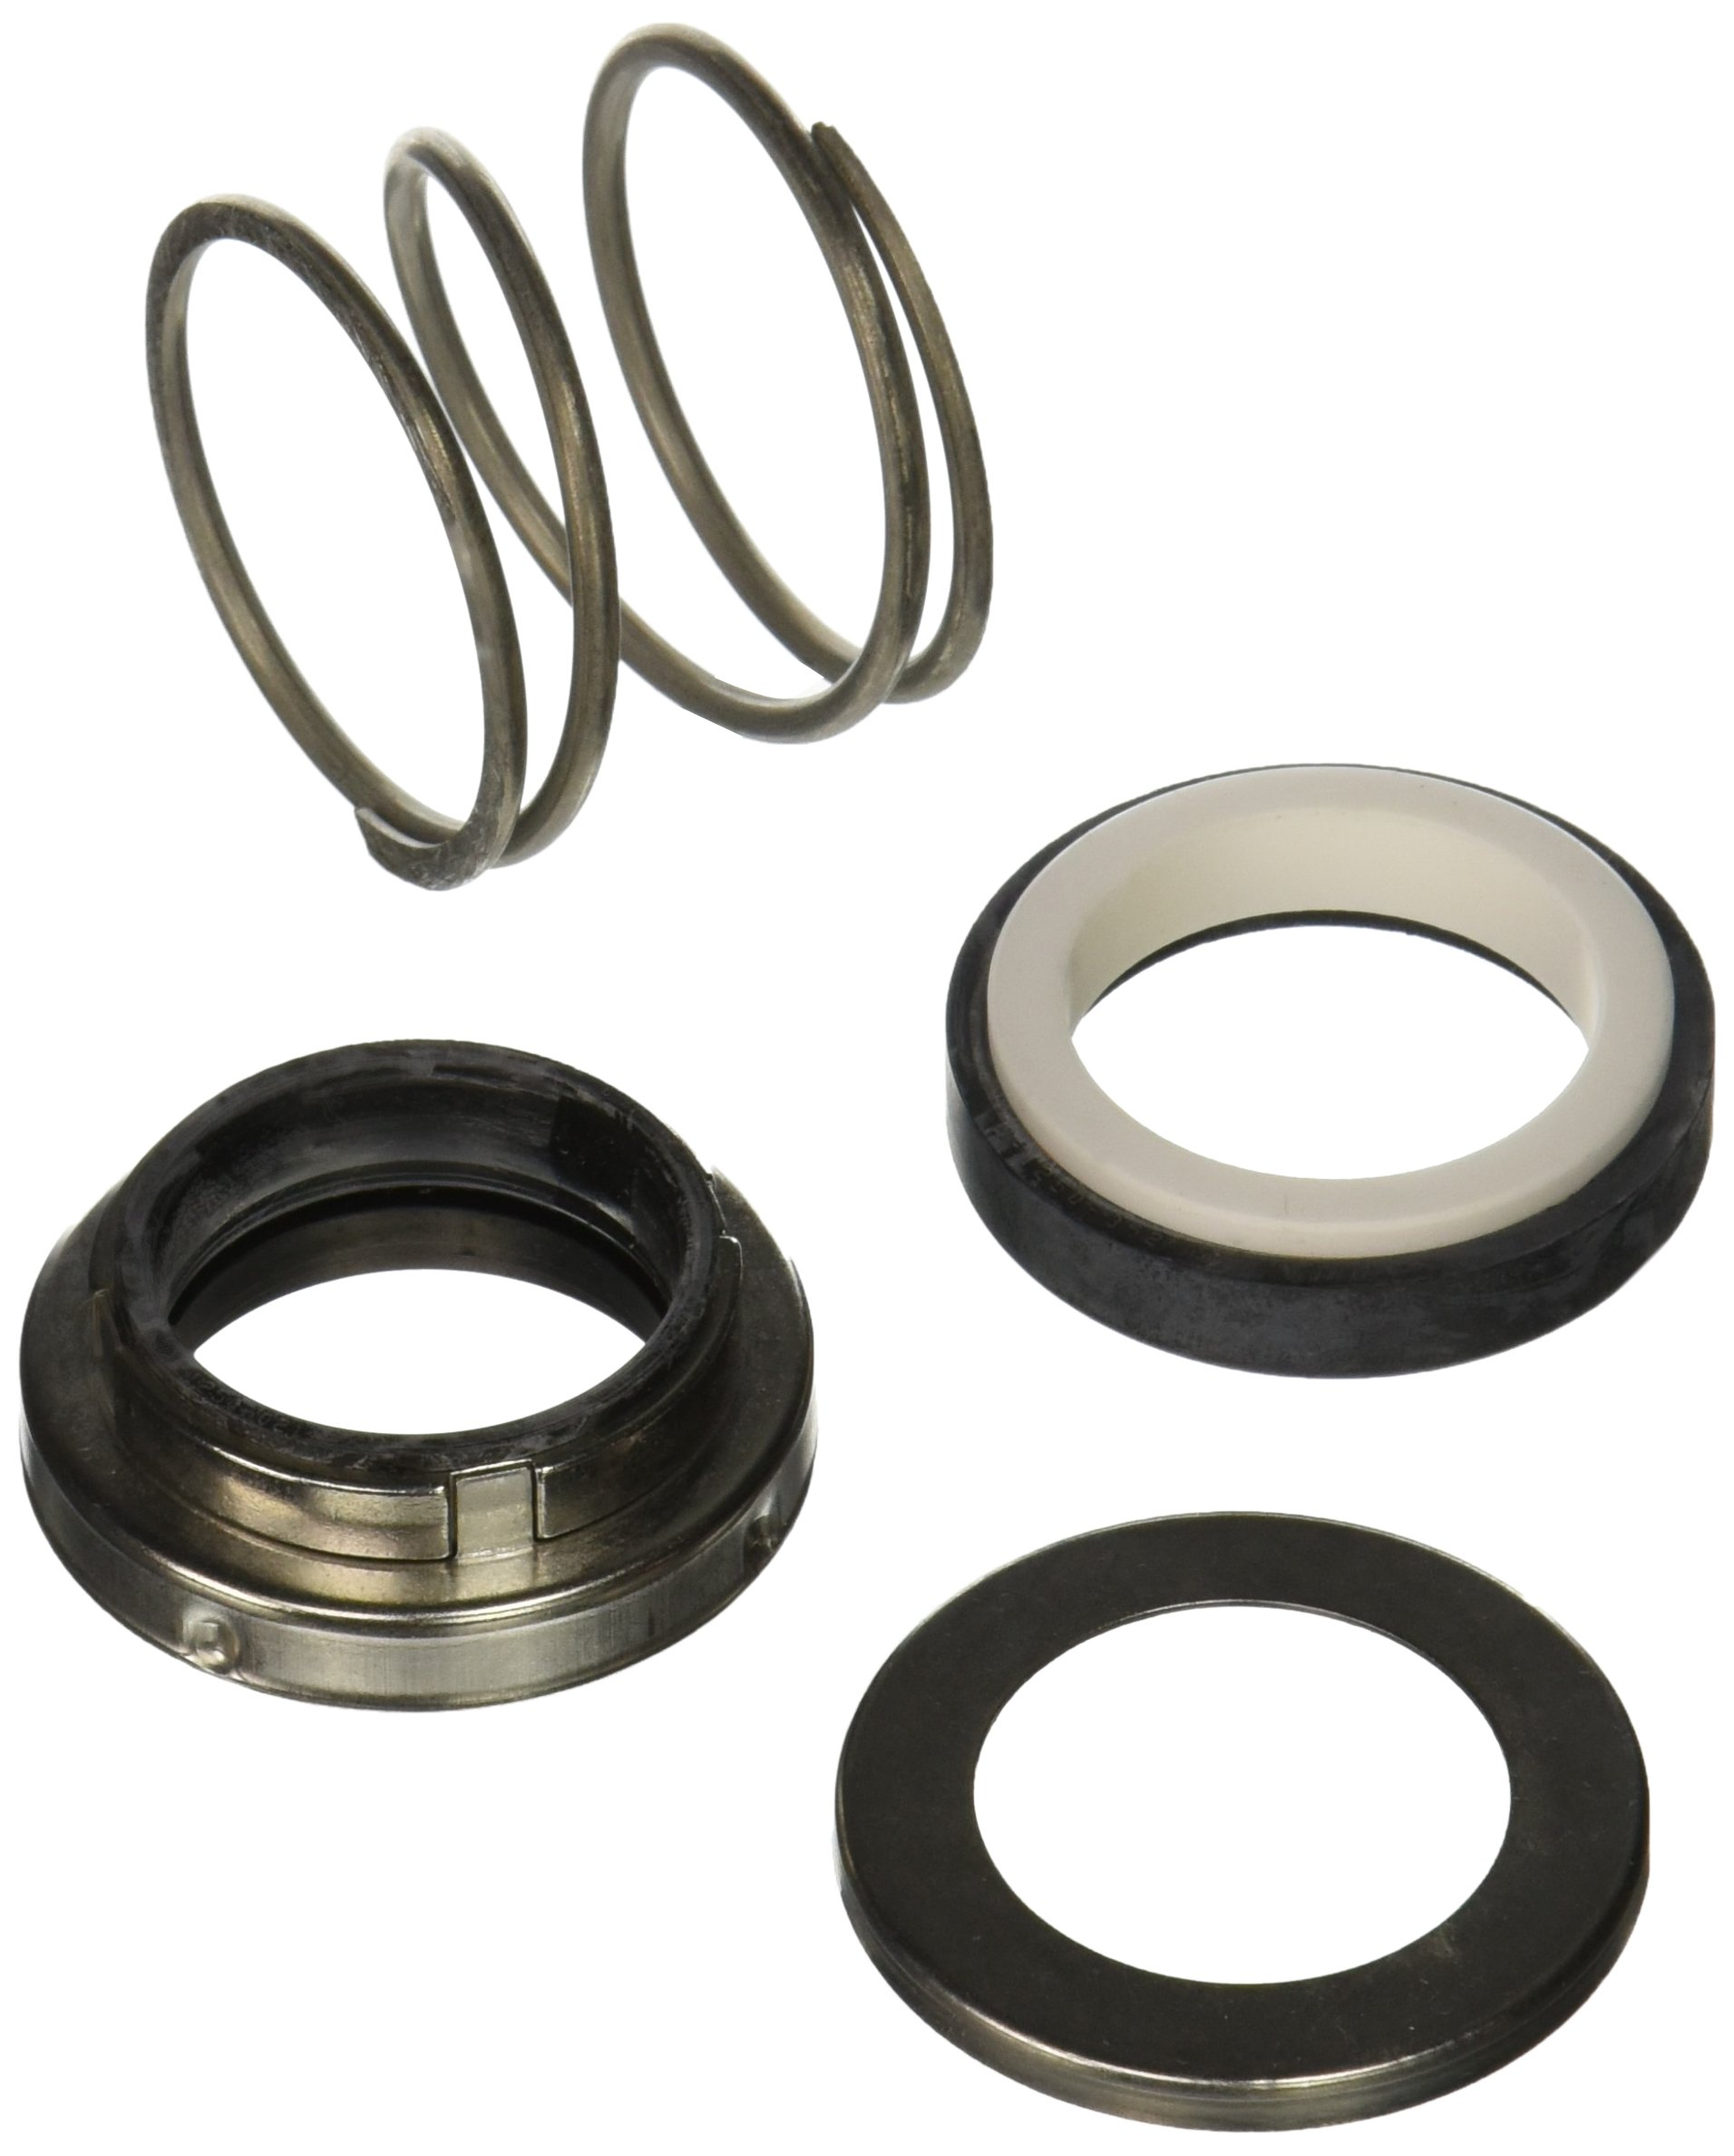 Pentair S32014 Mechanical Shaft Seal Replacement for Pentair CSPH/CCSPH Series Pool and Spa Commercial Pump